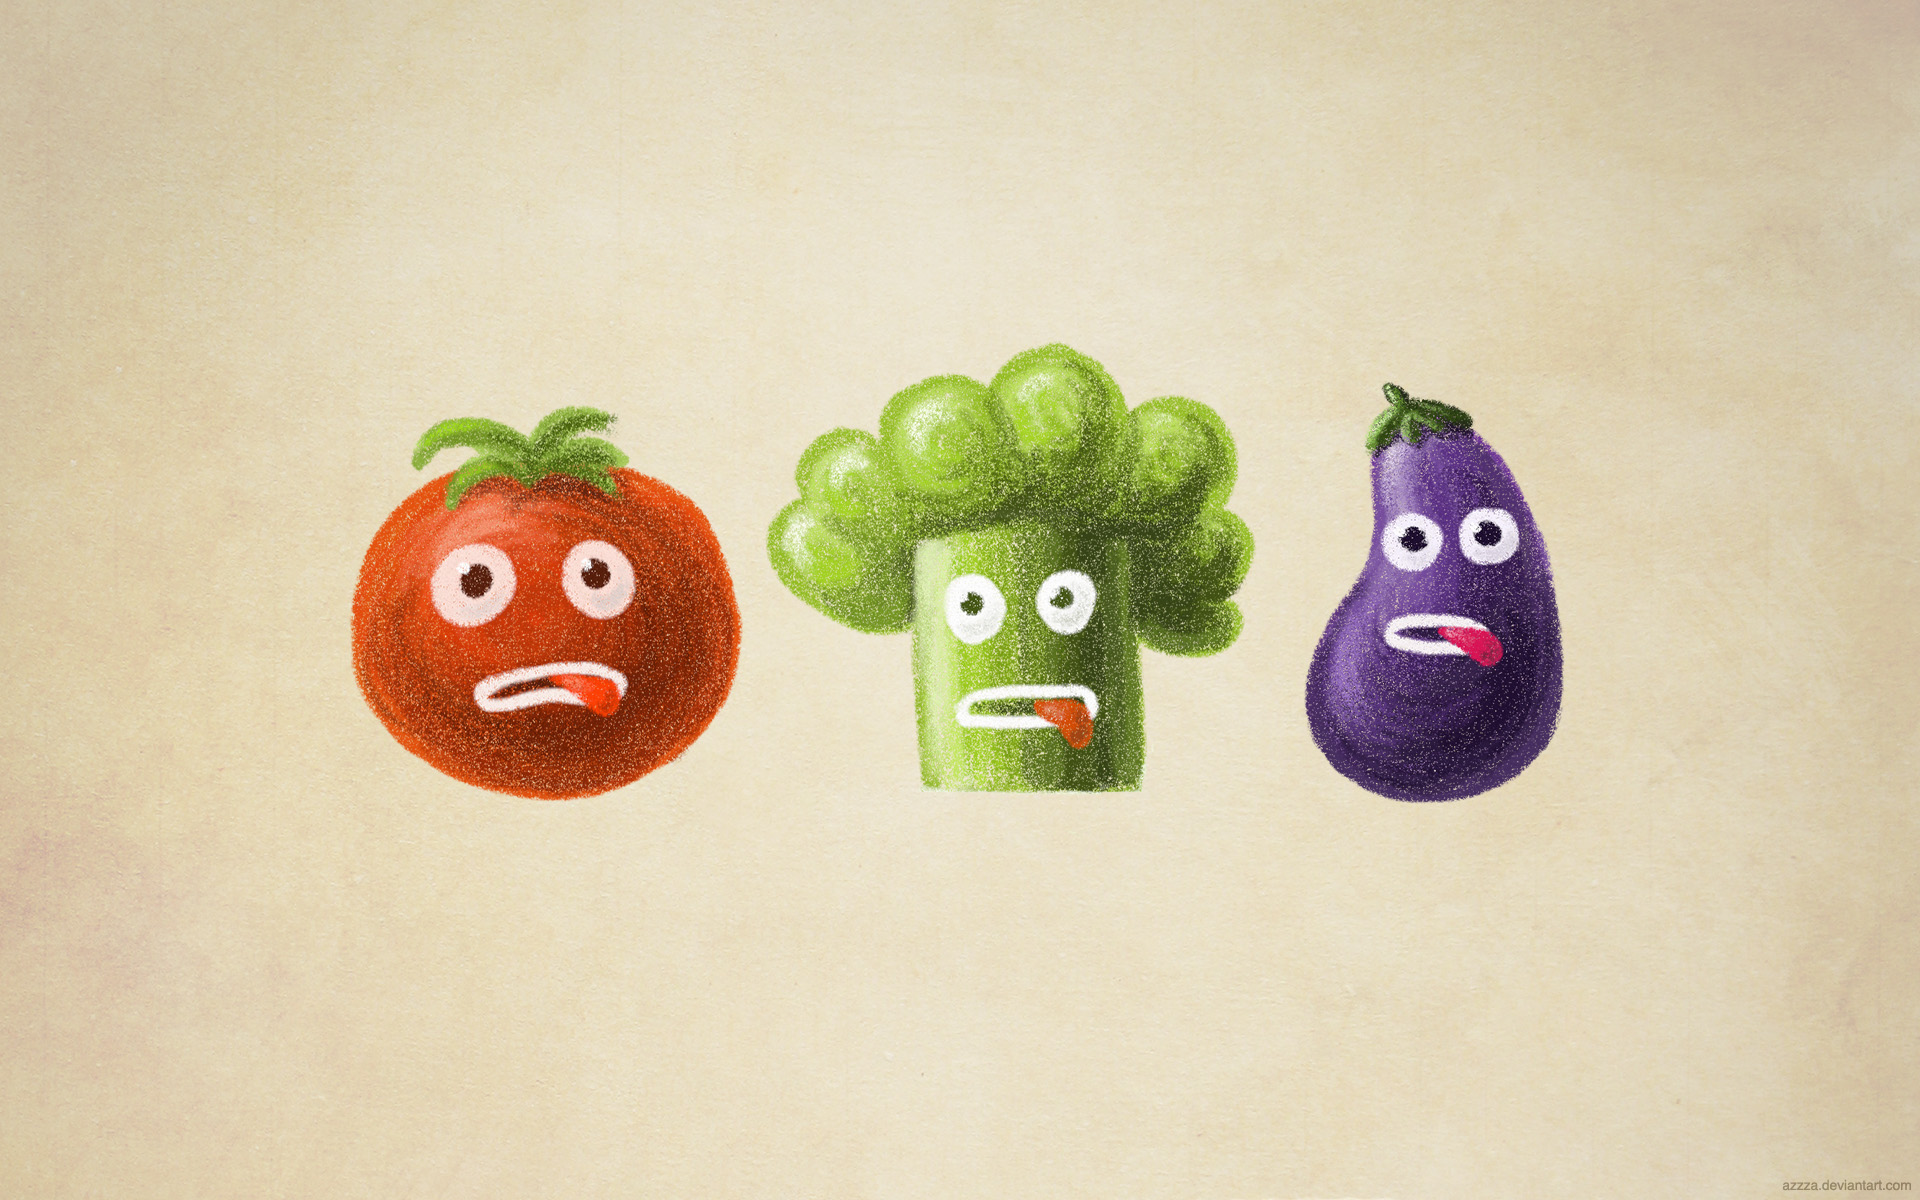 Stressed vegetables